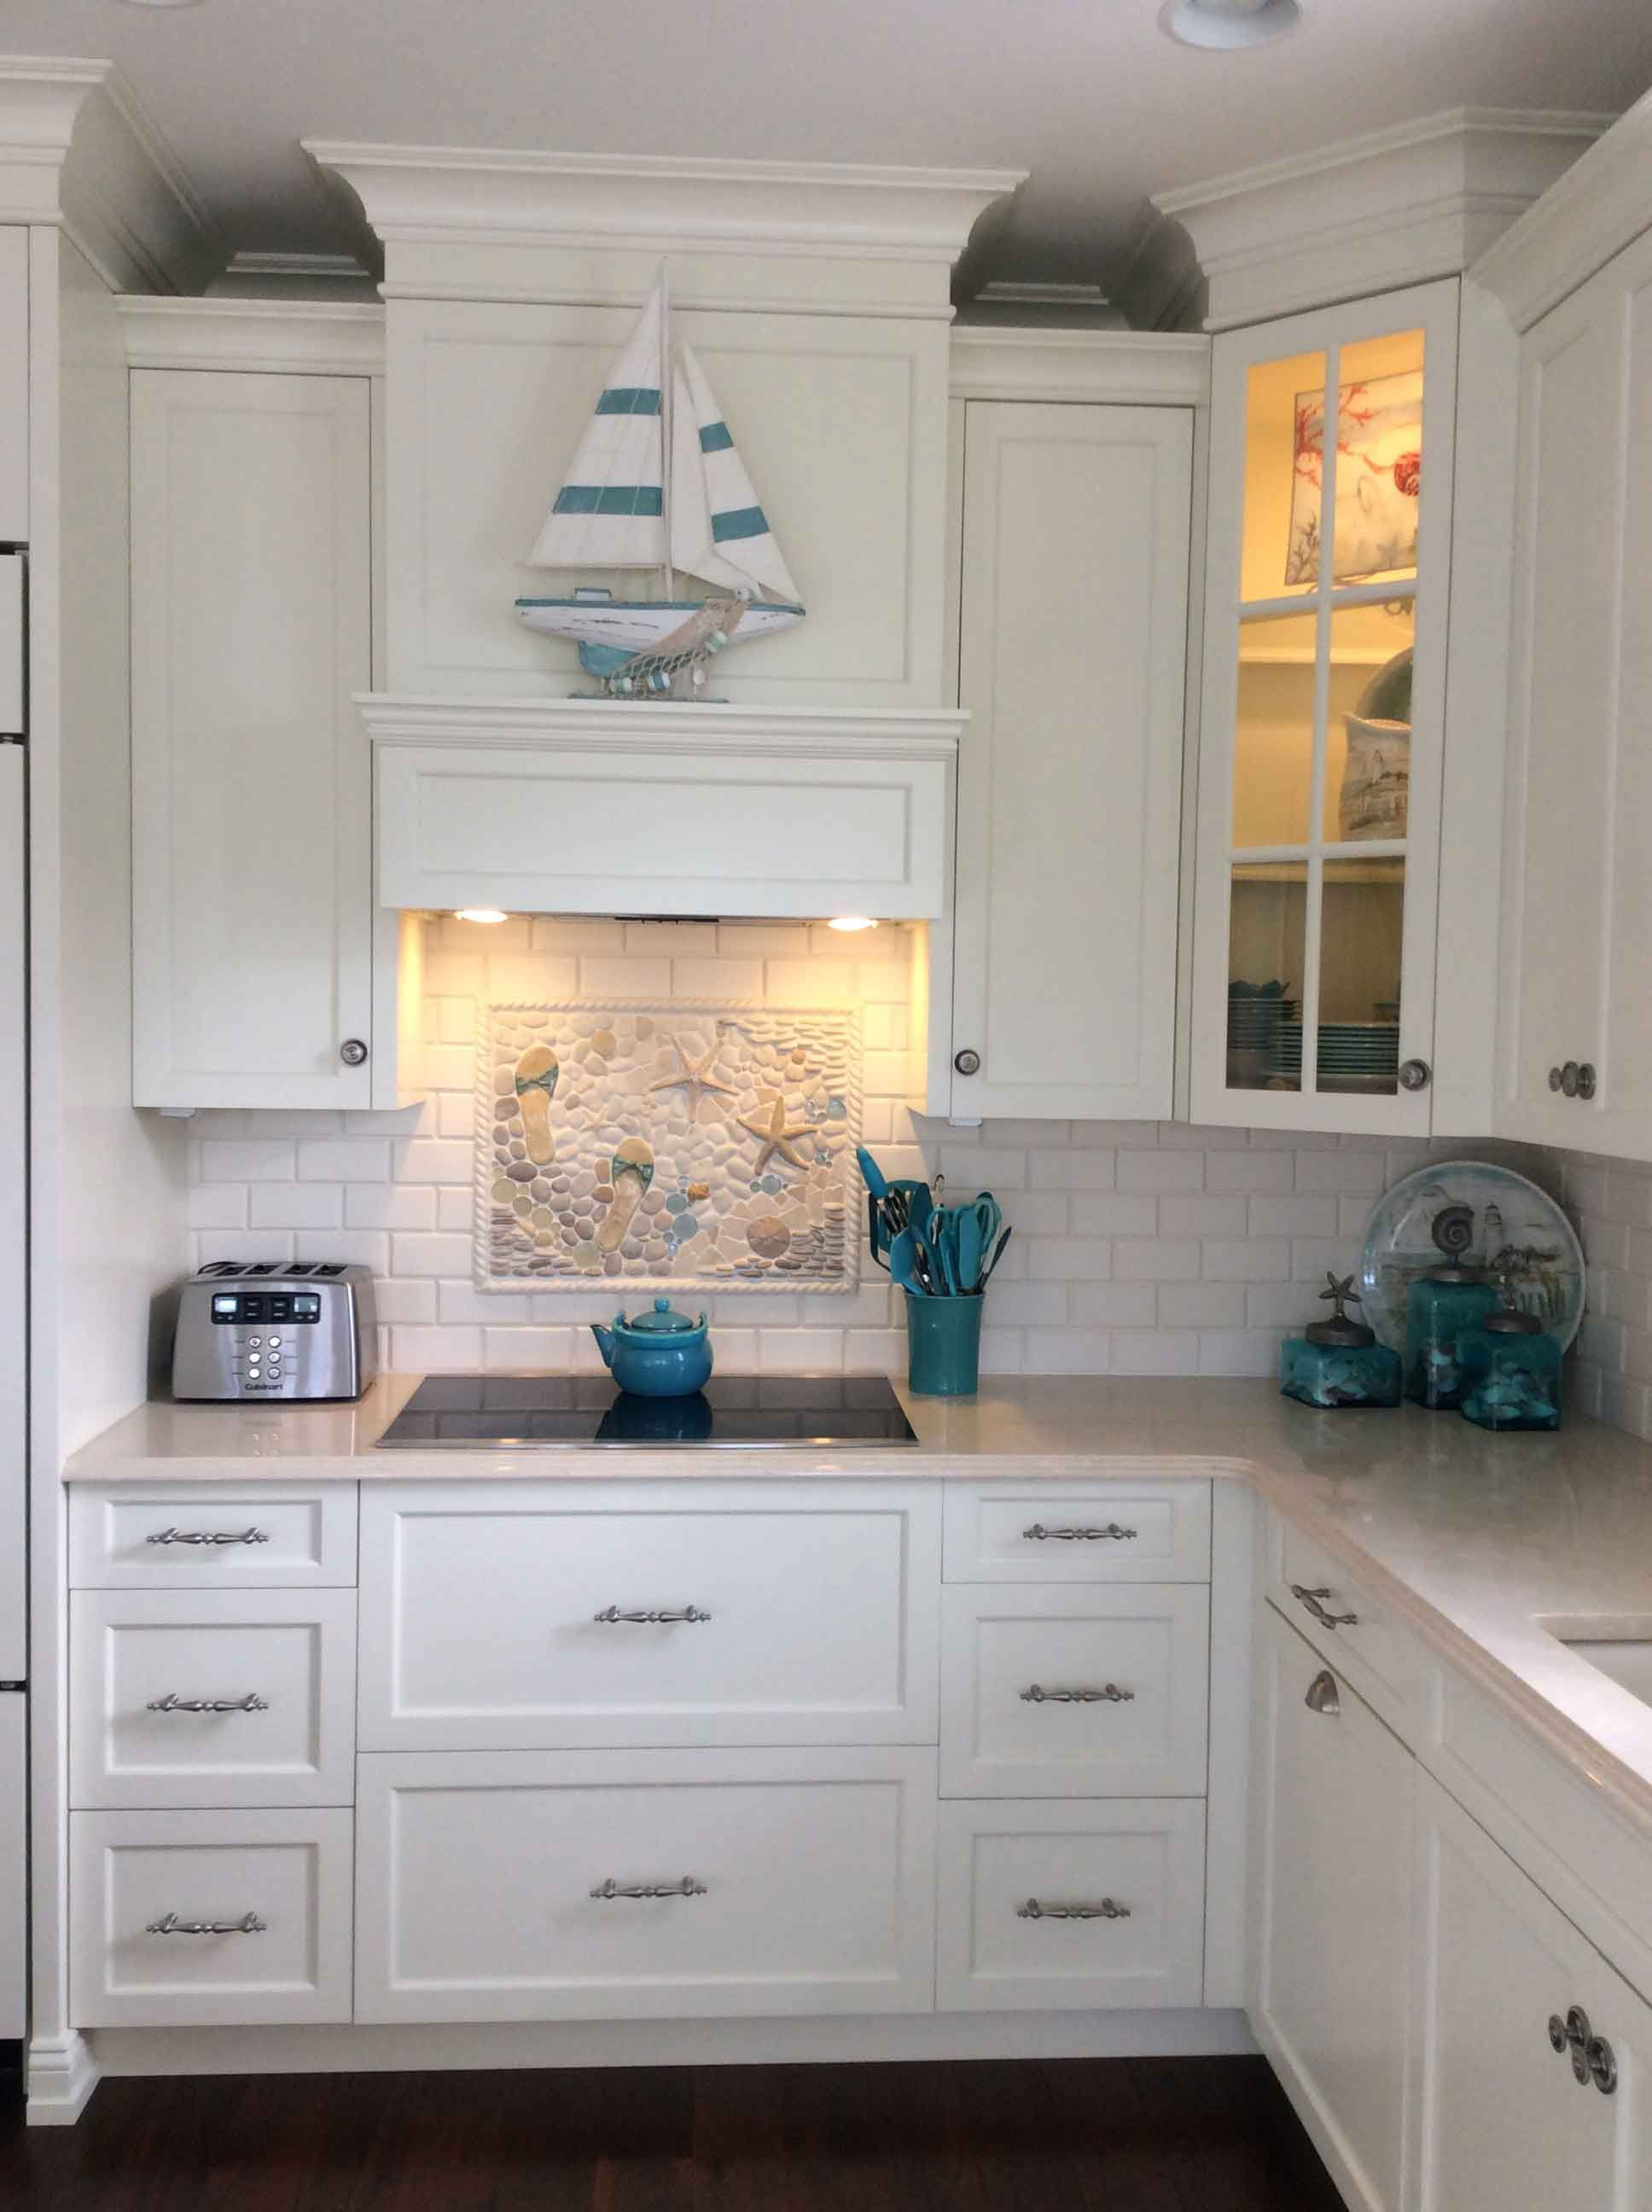 - Ocean-style Kitchen Backsplash With Starfish, Flip Flops And More